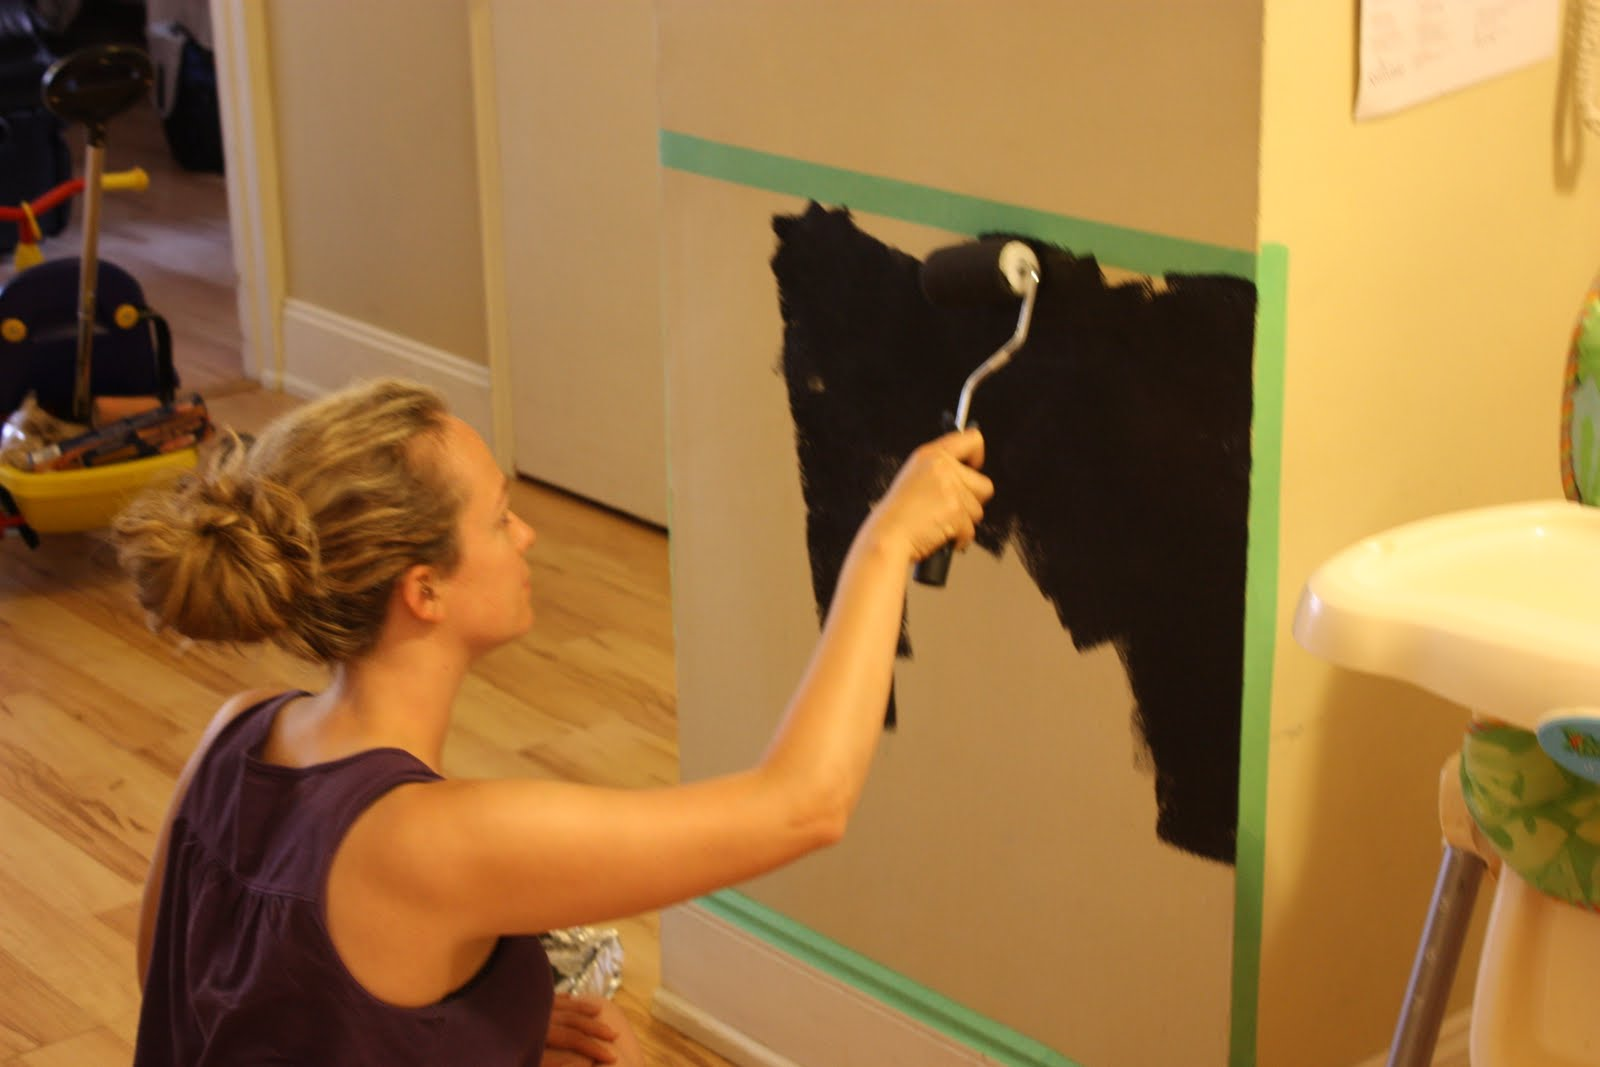 How To Turn A Wall Into A Whiteboard Uncommon Sense How To Make A Magnetic Chalkboard Wall Pt 1